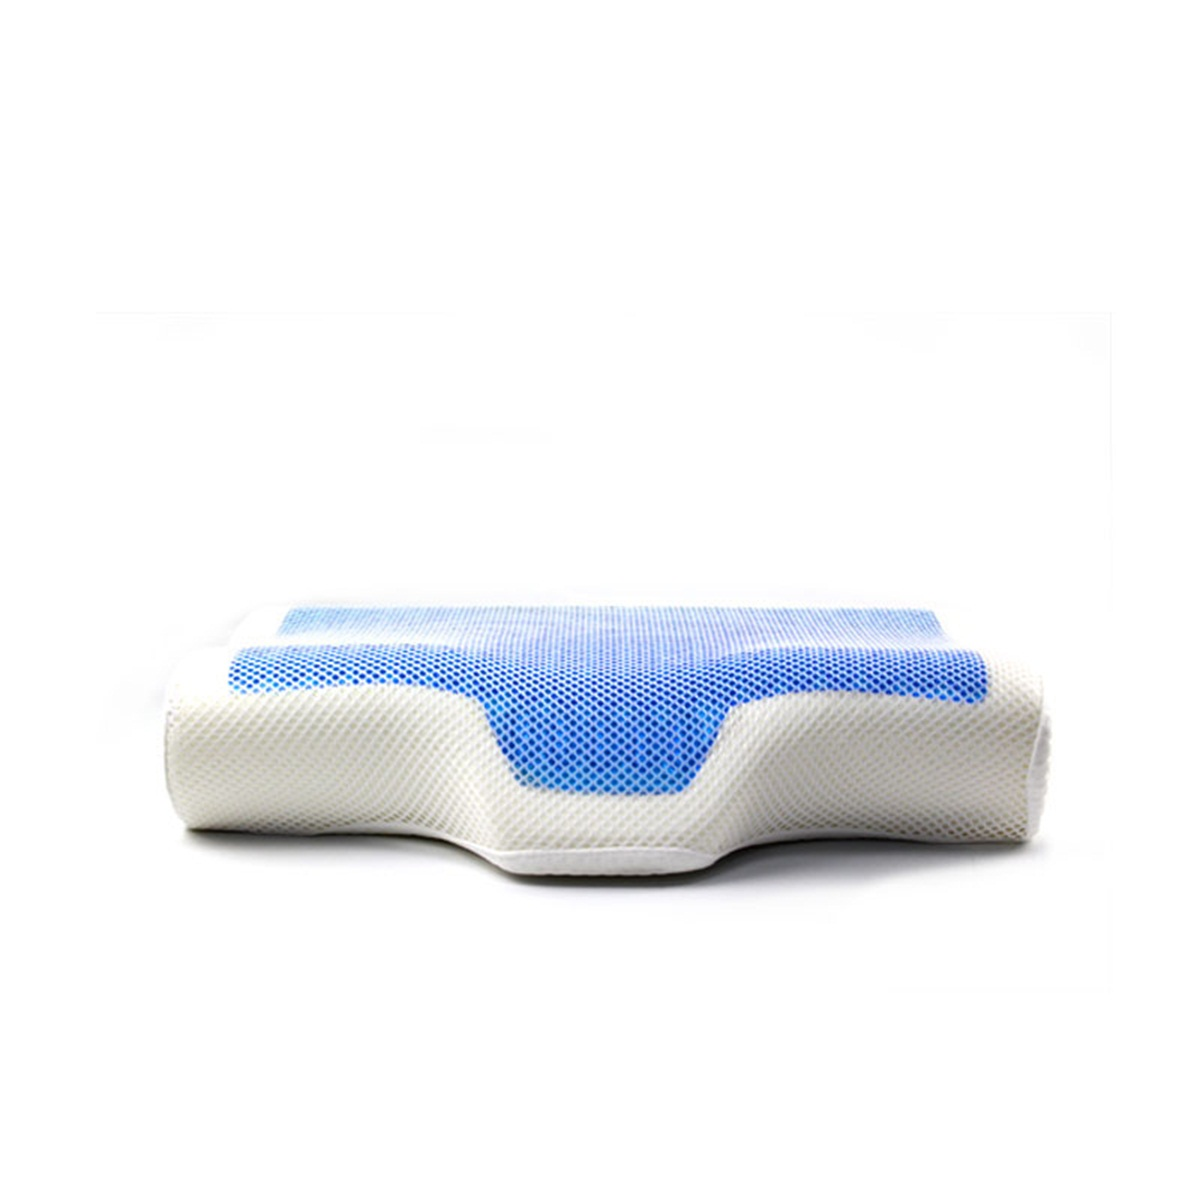 High quality manufacture very comfortable memory foam gel massage pillow for improving sleep